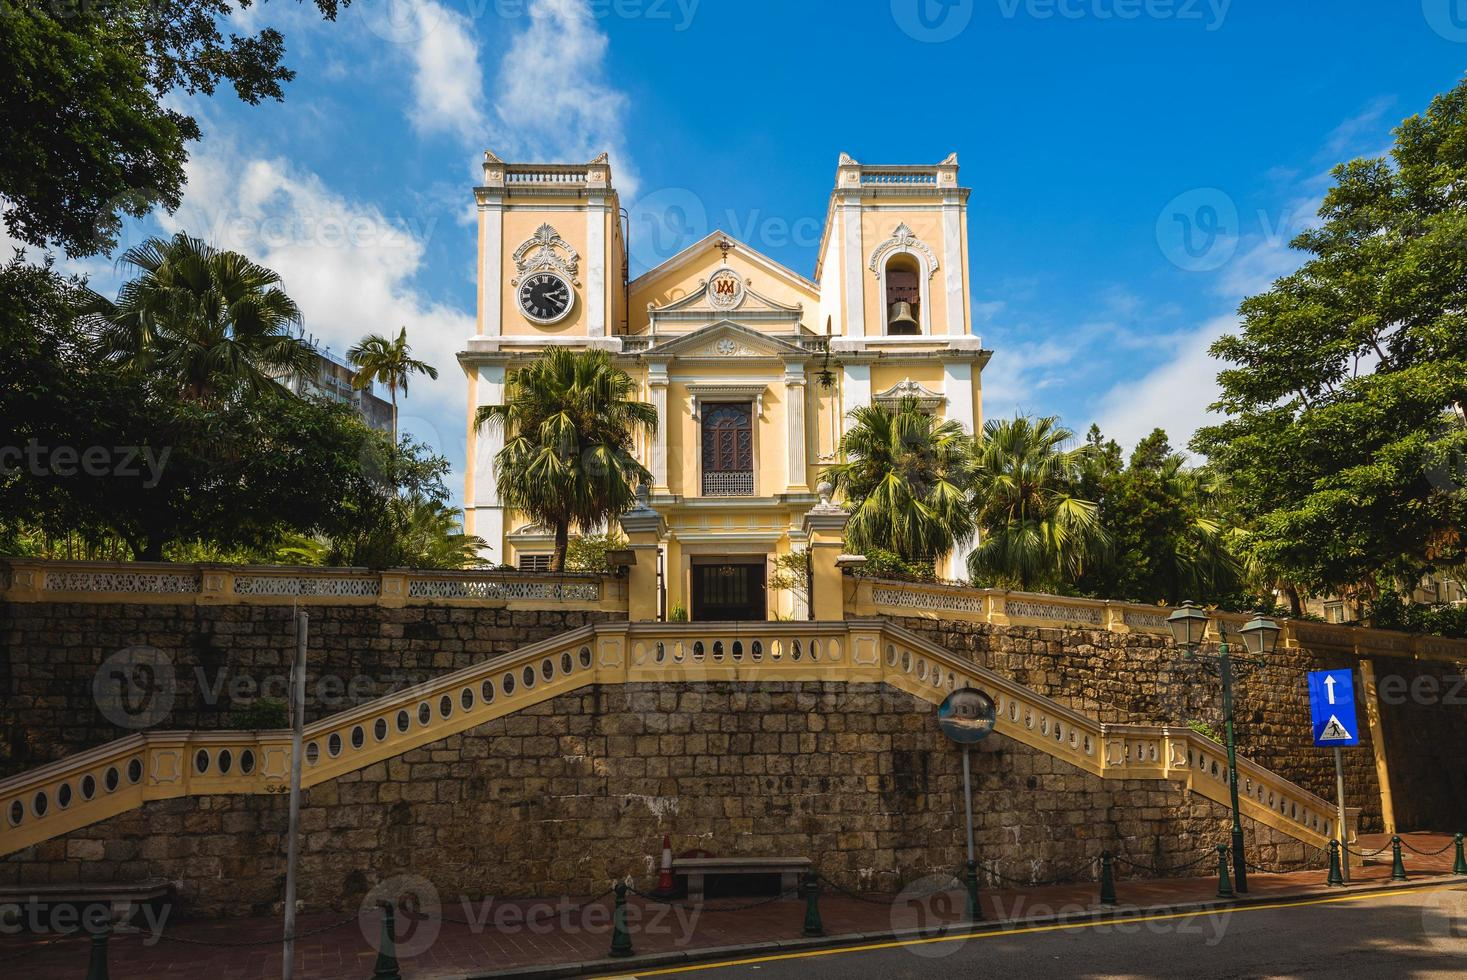 St Lawrence Church is one of the oldest church in Macau, China photo